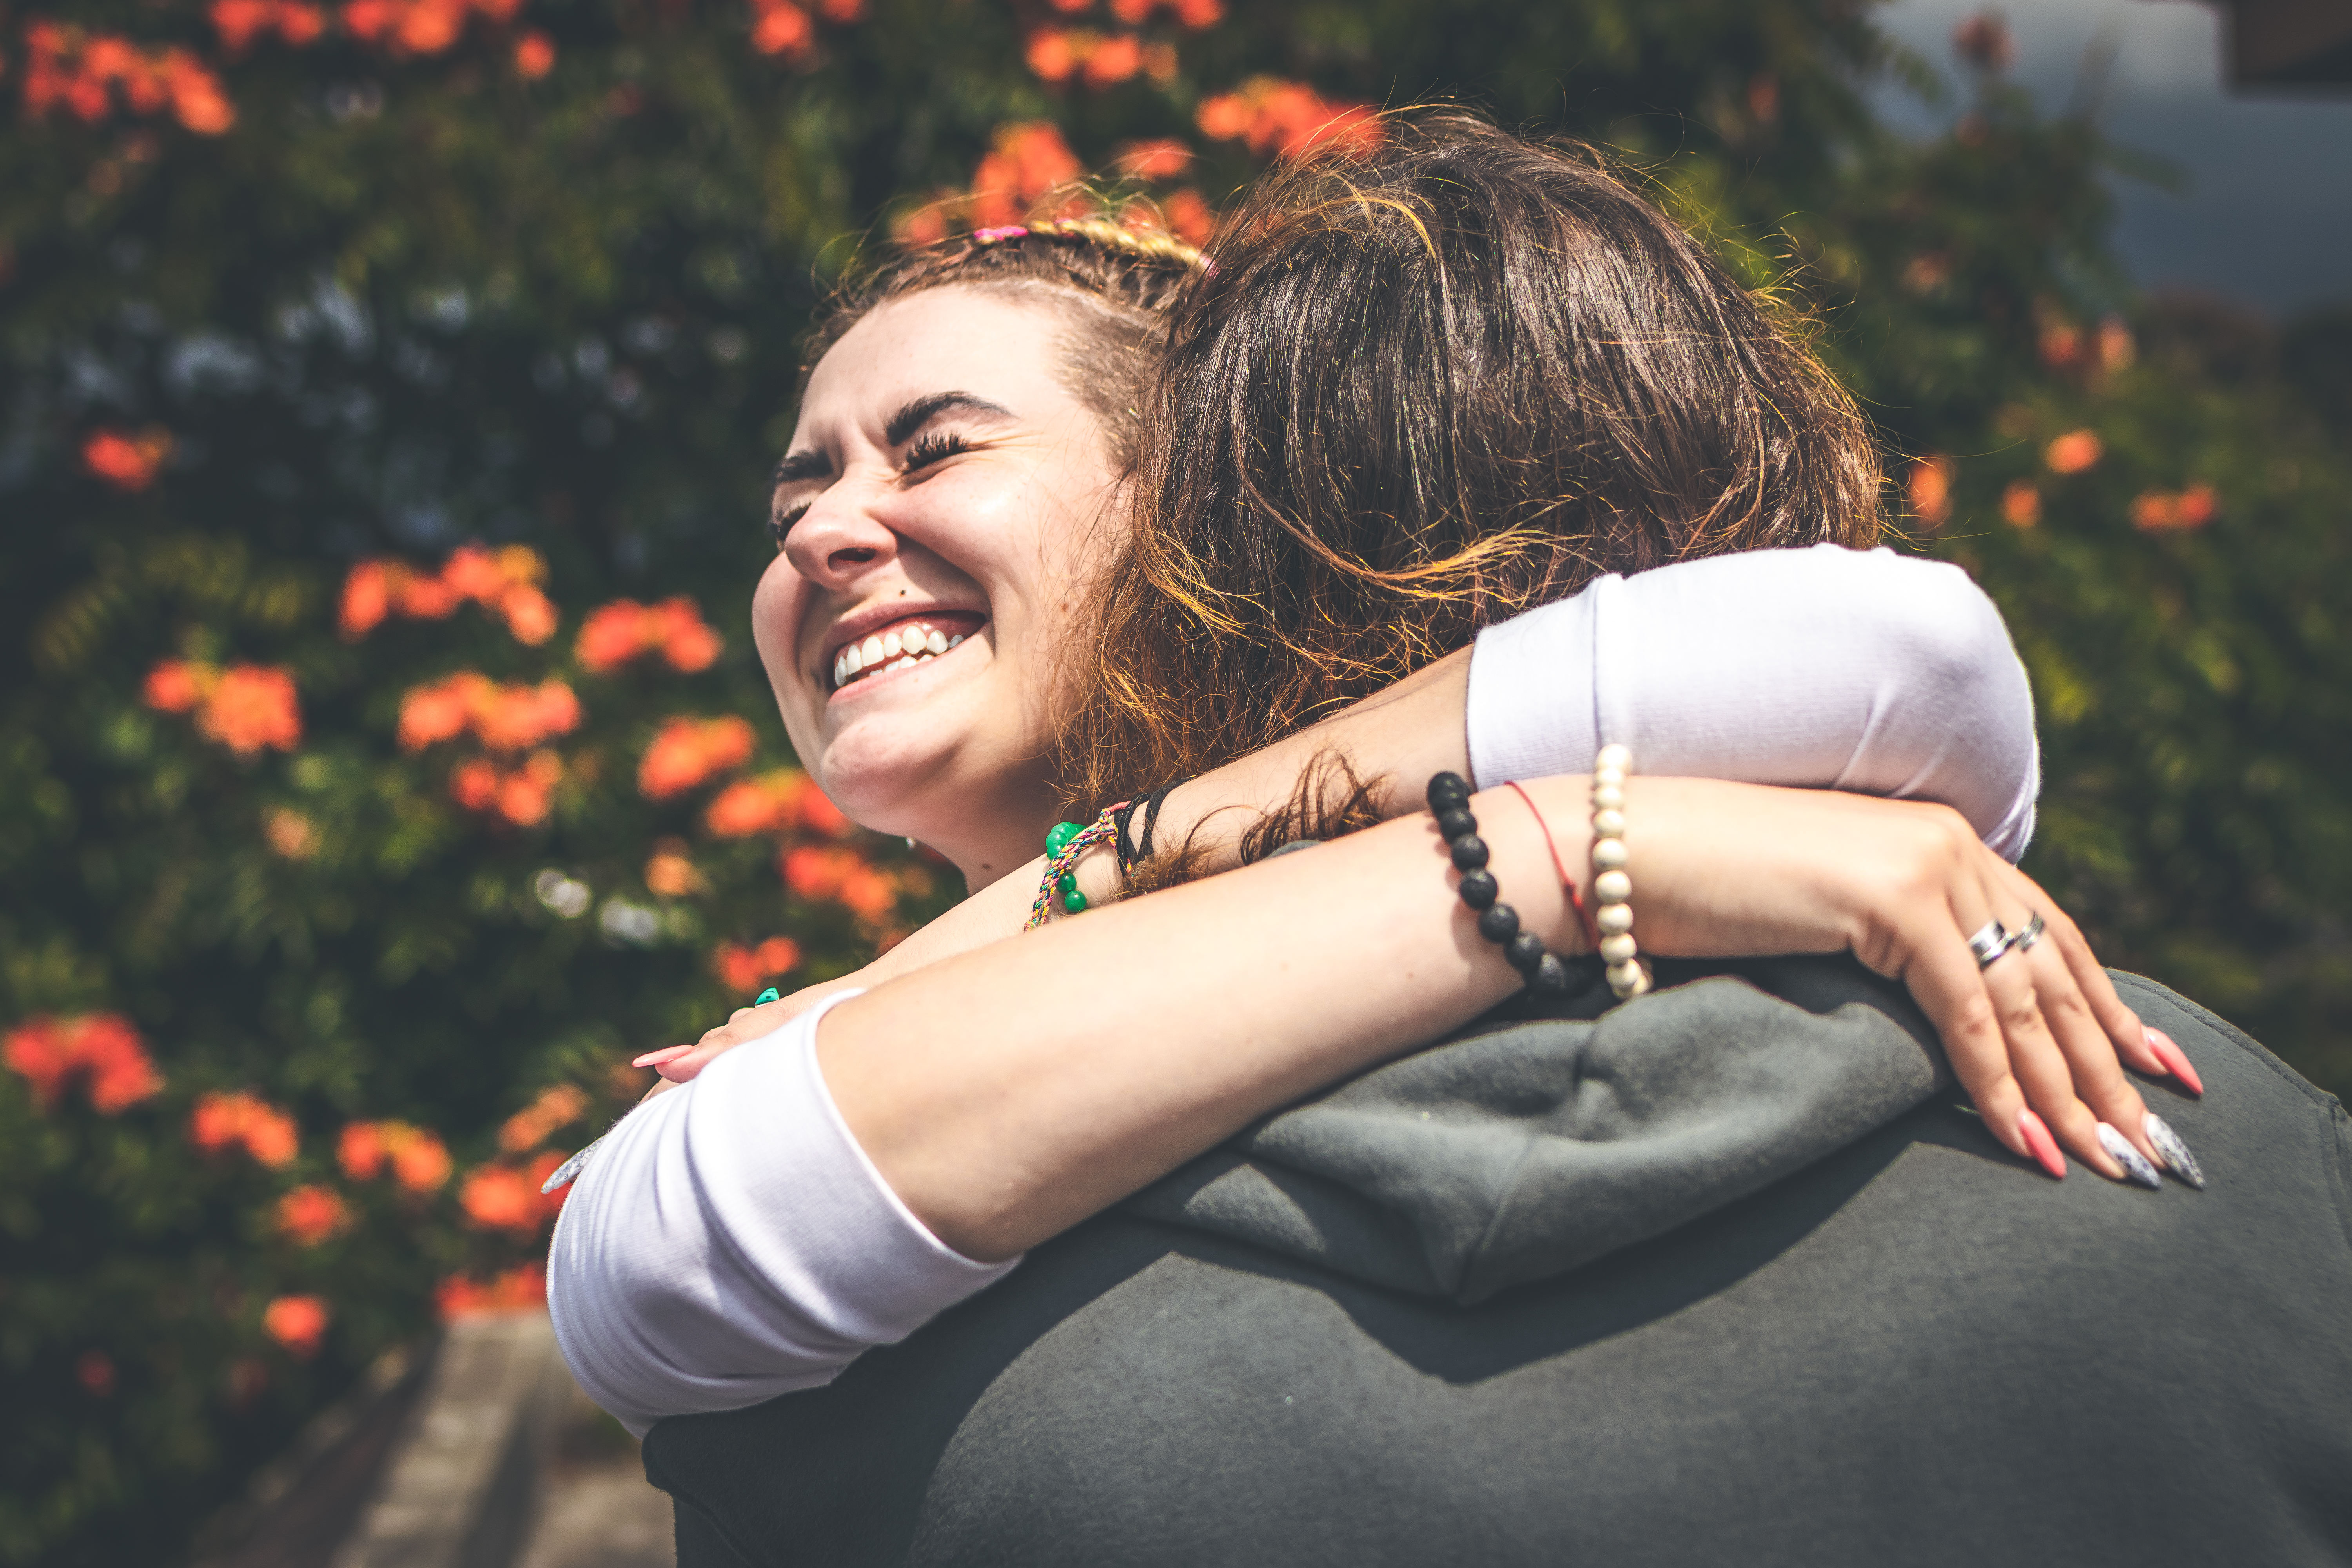 Smiling Woman Hugging Another Person